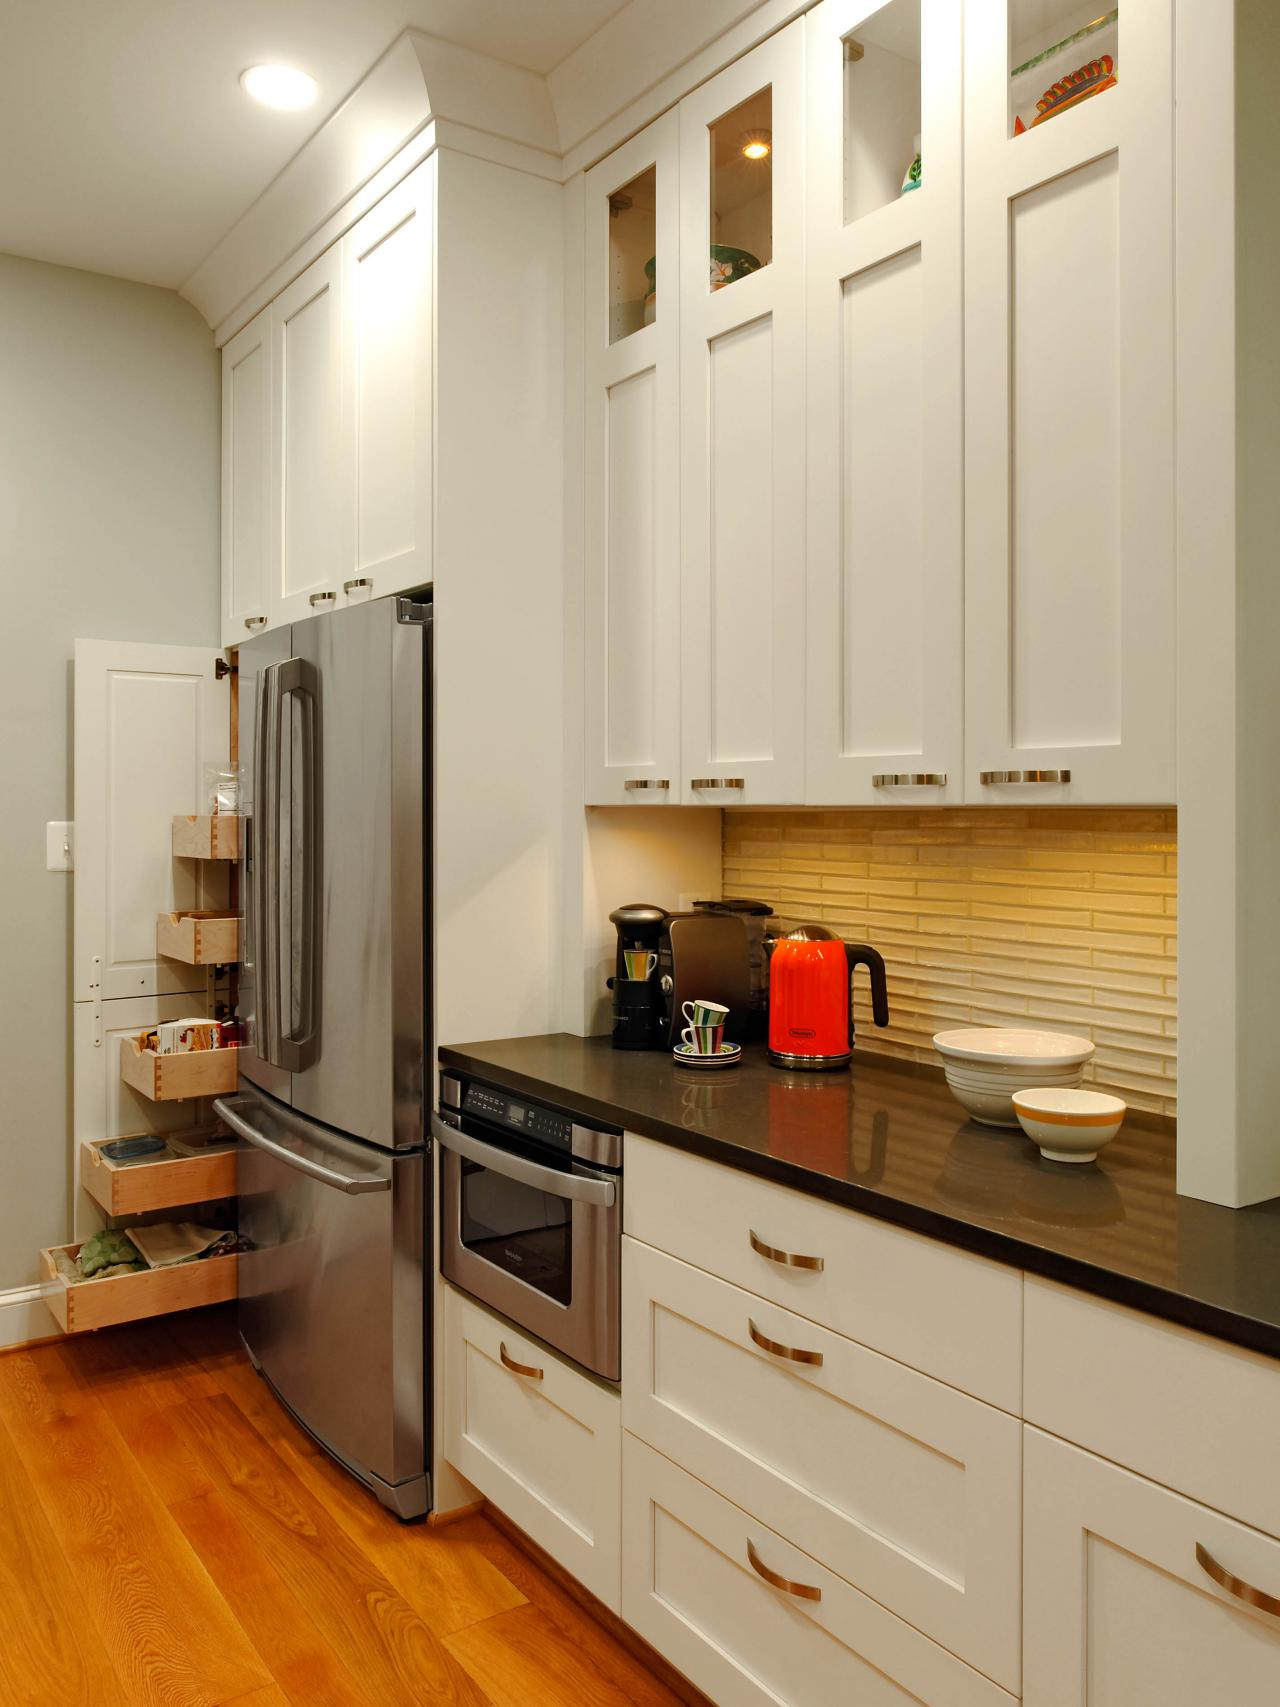 Kitchen cabinet prices pictures ideas tips from hgtv for Kitchen cabinets ideas images